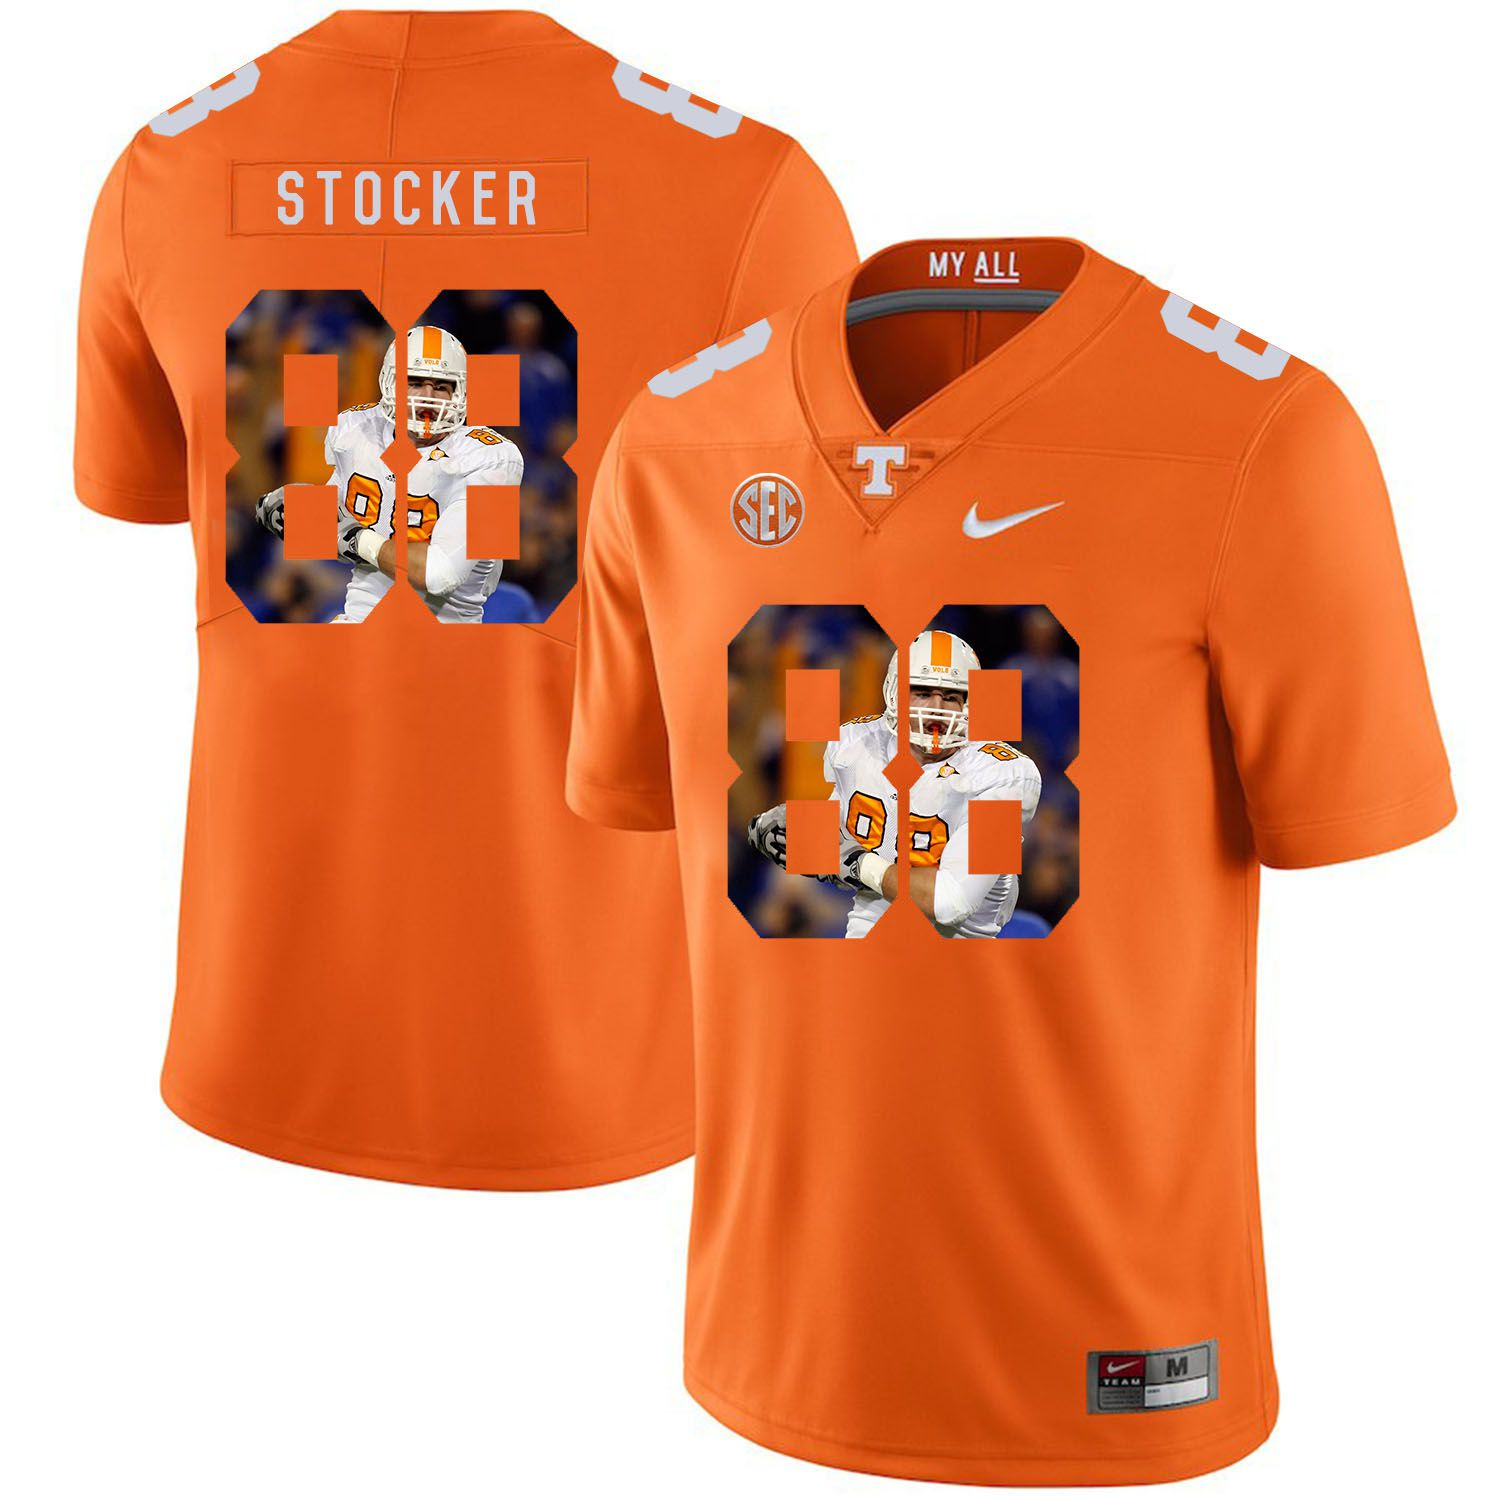 Men Tennessee Volunteers 88 Stocker Orange Fashion Edition Customized NCAA Jerseys